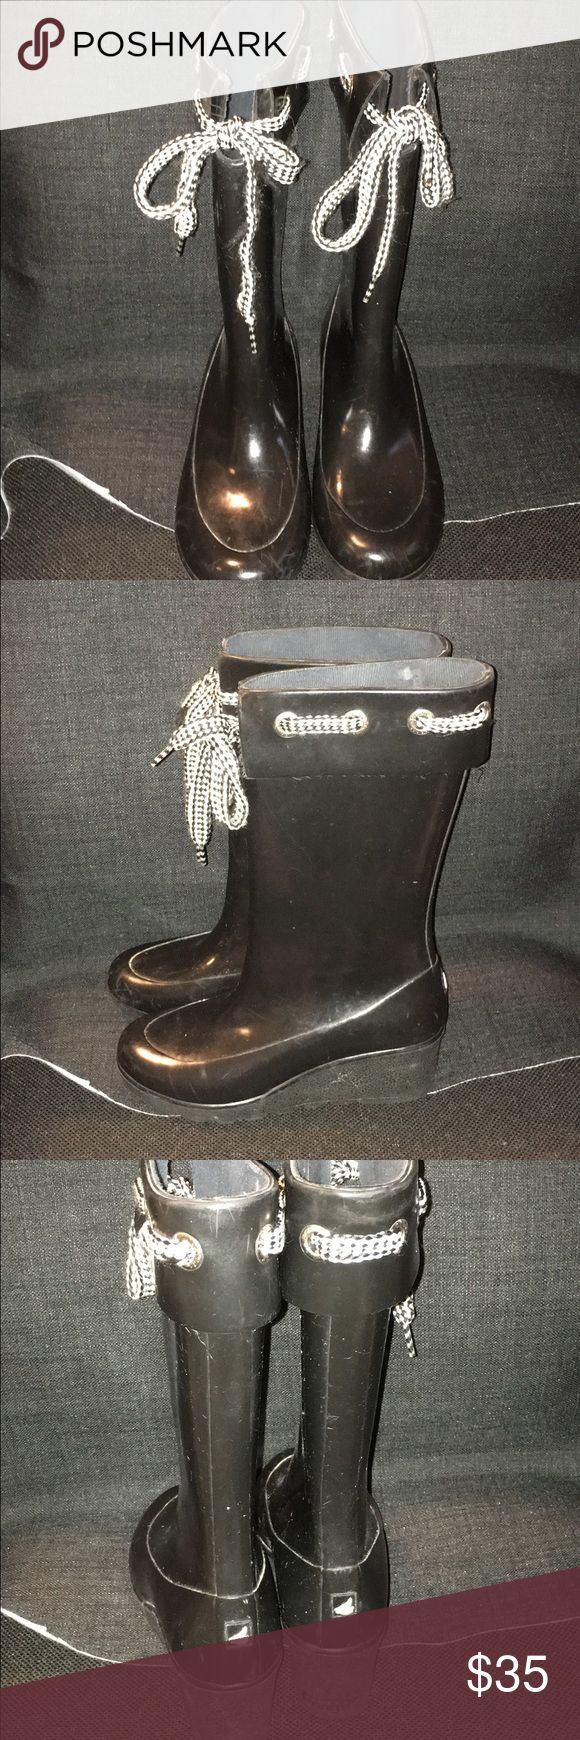 Cute black Sperry size 7 rain boots Super cute black sperry top sider size 7 rain boots with black and white detailing, in good condition and gently used, I love these! Sperry Top-Sider Shoes Winter & Rain Boots